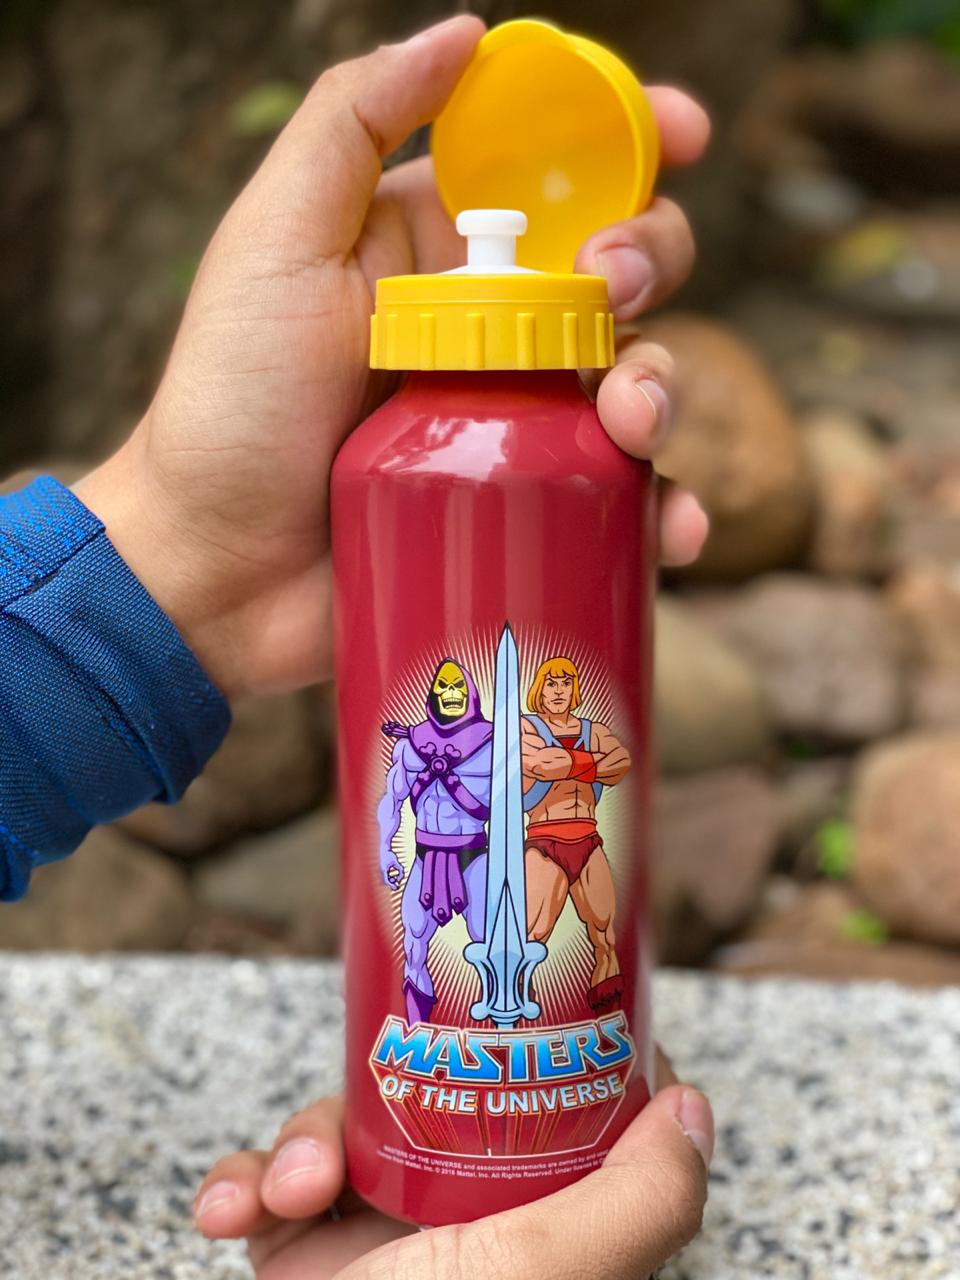 Garrafa (Squeeze) Alumínio He-Man & Skeletor: Mestres do Universo (Master Of The Universe) 500ml - Urban